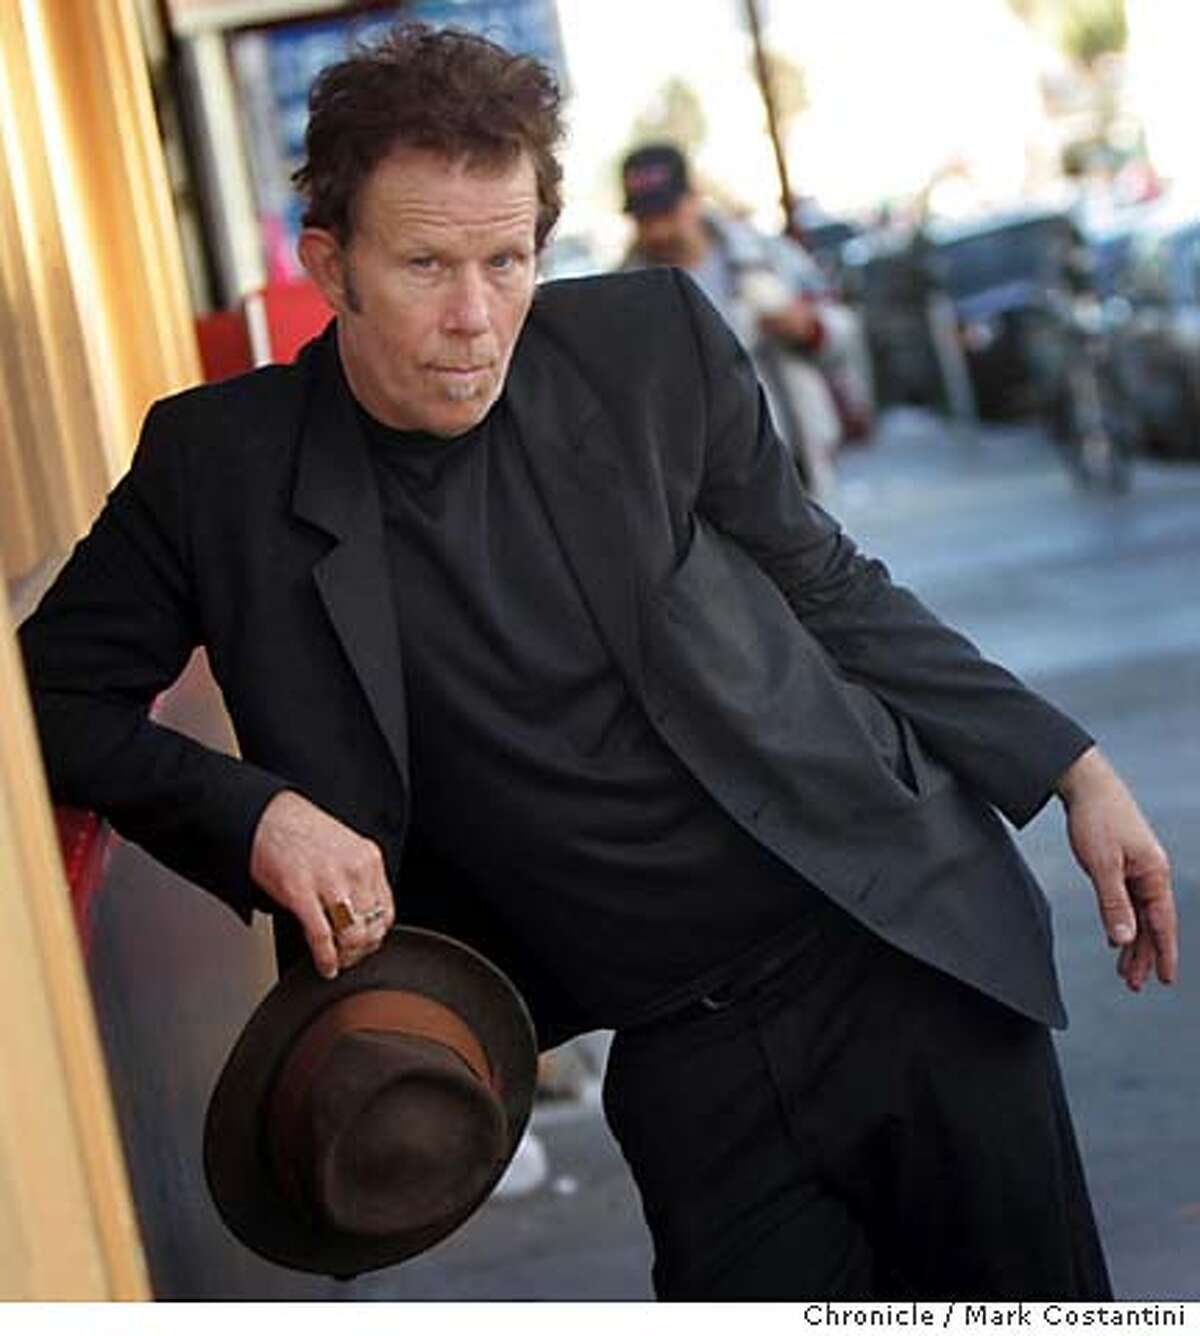 PORTRAIT OF SINGER TOM WAITS INSIDE THE NEW MISSION THEATER, AN OLD, CLOSED VAUDEVILLE THEATER ON MISSION ST. EVENT ON 9/20/04 IN San Francisco. S.F. Chronicle Photo: Mark Costantini Datebook#Datebook#SundayDateBook#10/03/2004#ALL#Advance##0422368361